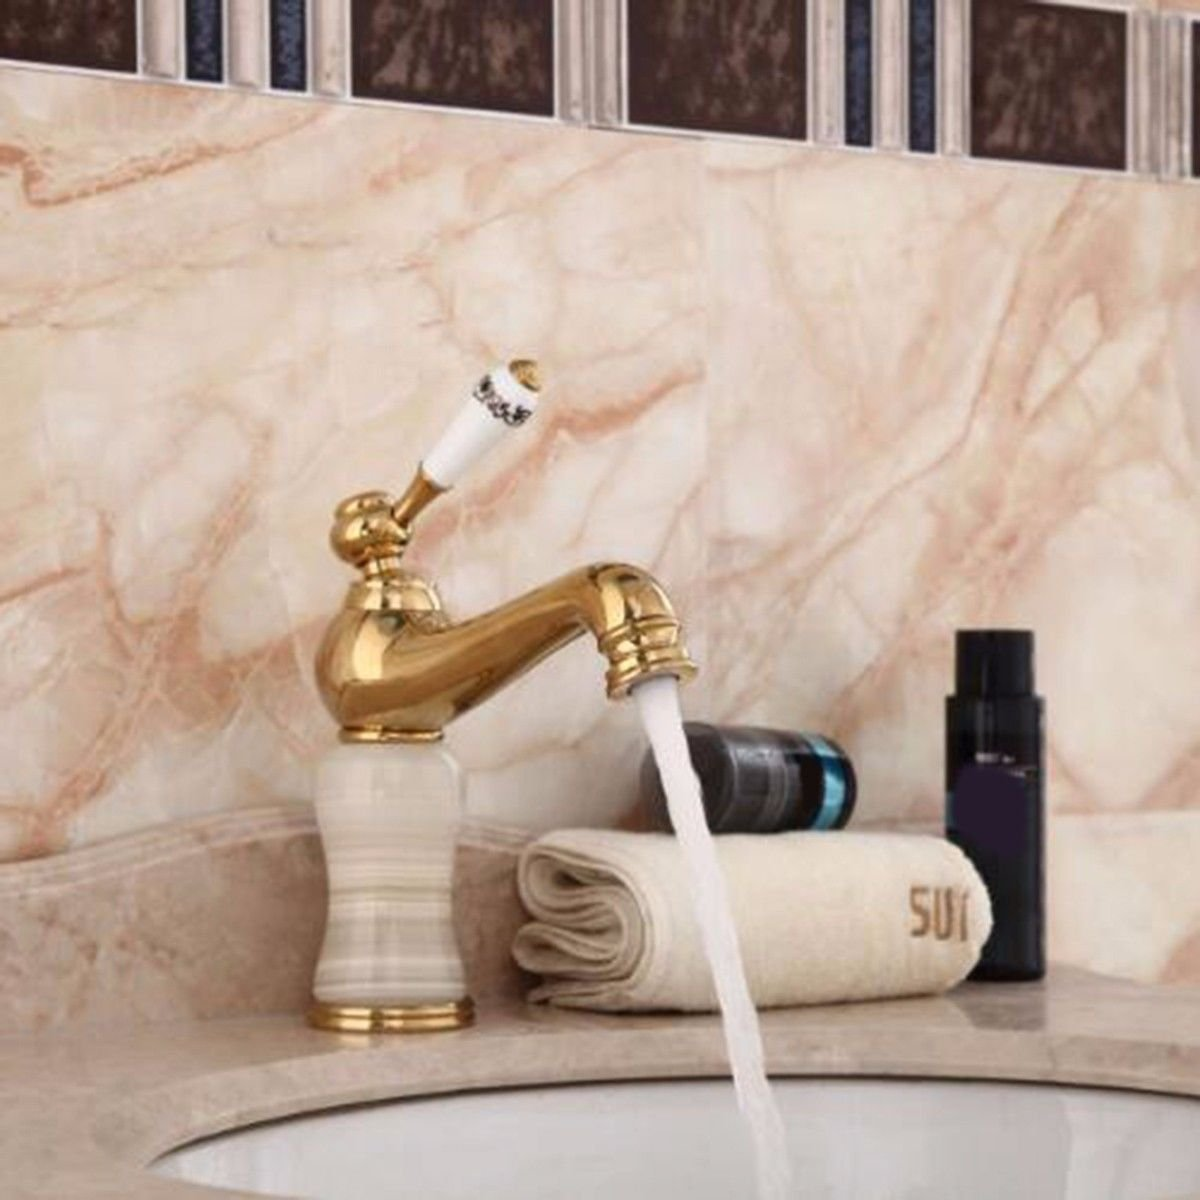 ETERNAL QUALITY Bathroom Sink Basin Tap Brass Mixer Tap Washroom Mixer Faucet The jewel of the whole copper golden taps basin cold water tap Faucet Kitchen Sink Taps